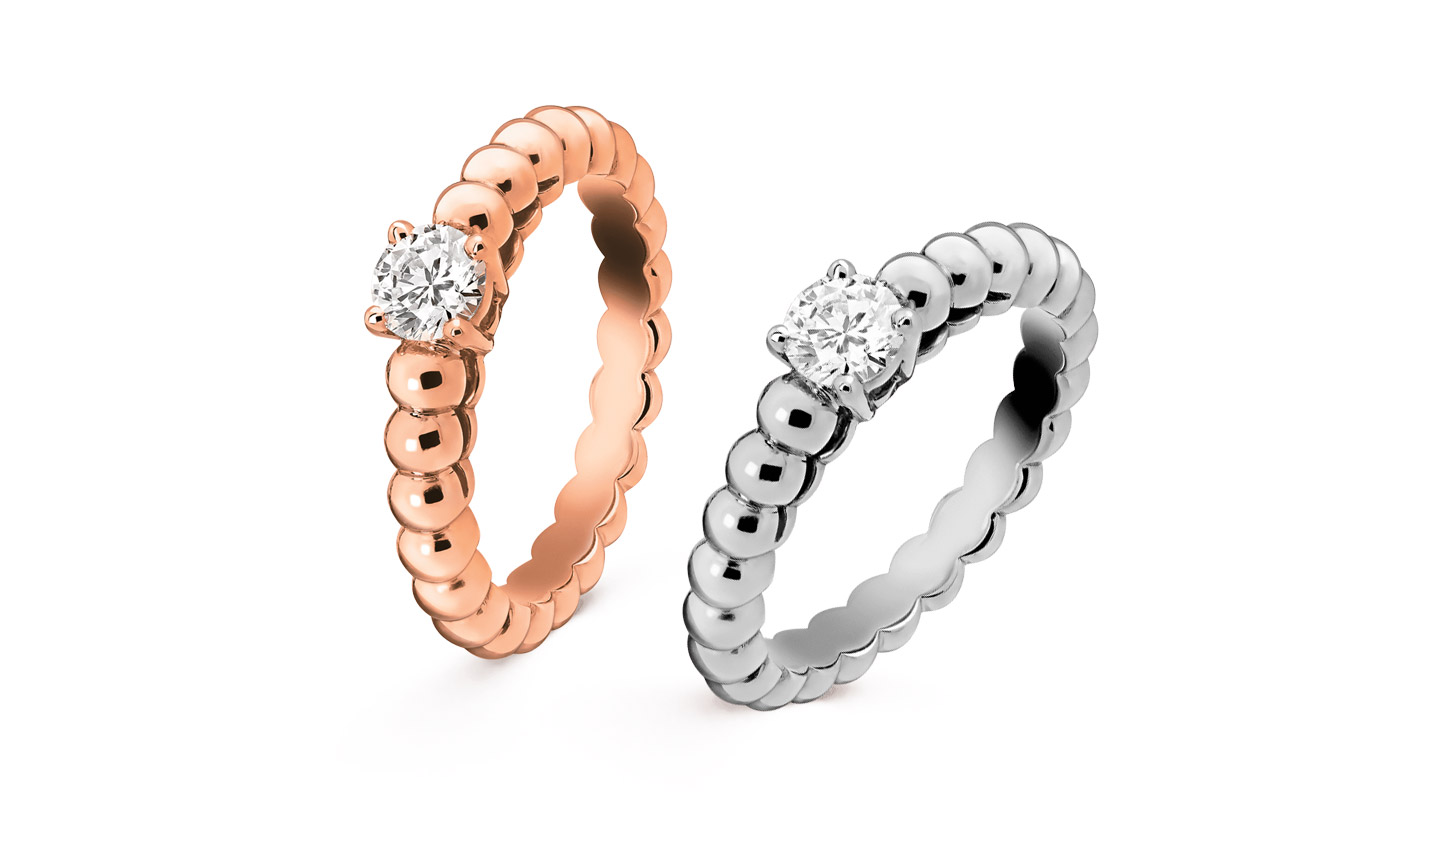 Van Cleef & Arpels 'Perlée solitaire' rose gold and white gold diamond engagement rings